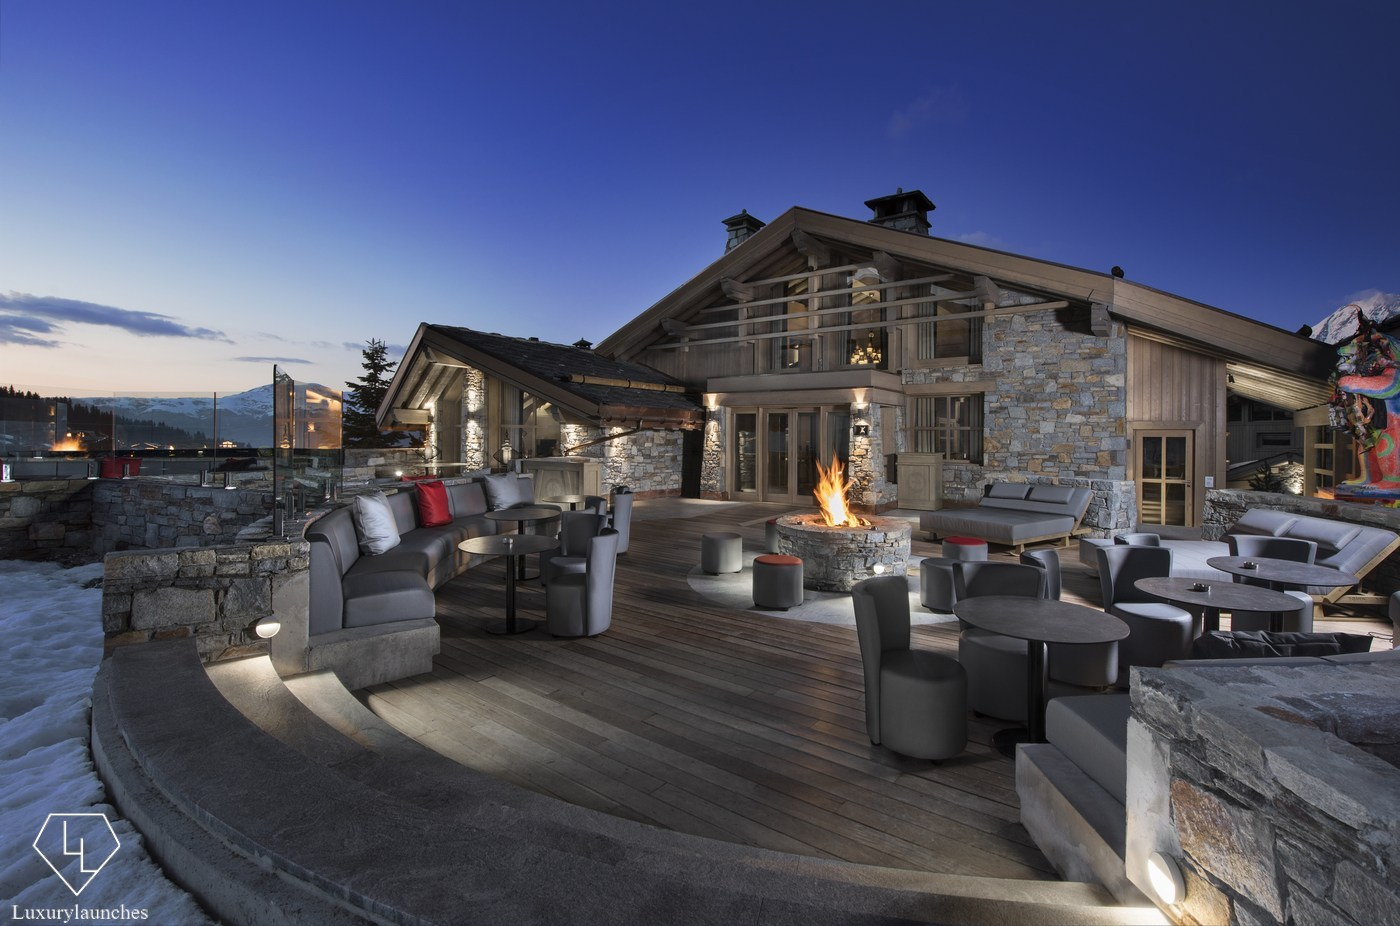 Suite Of The Week Suite Altitude At Le K2 Altitude In